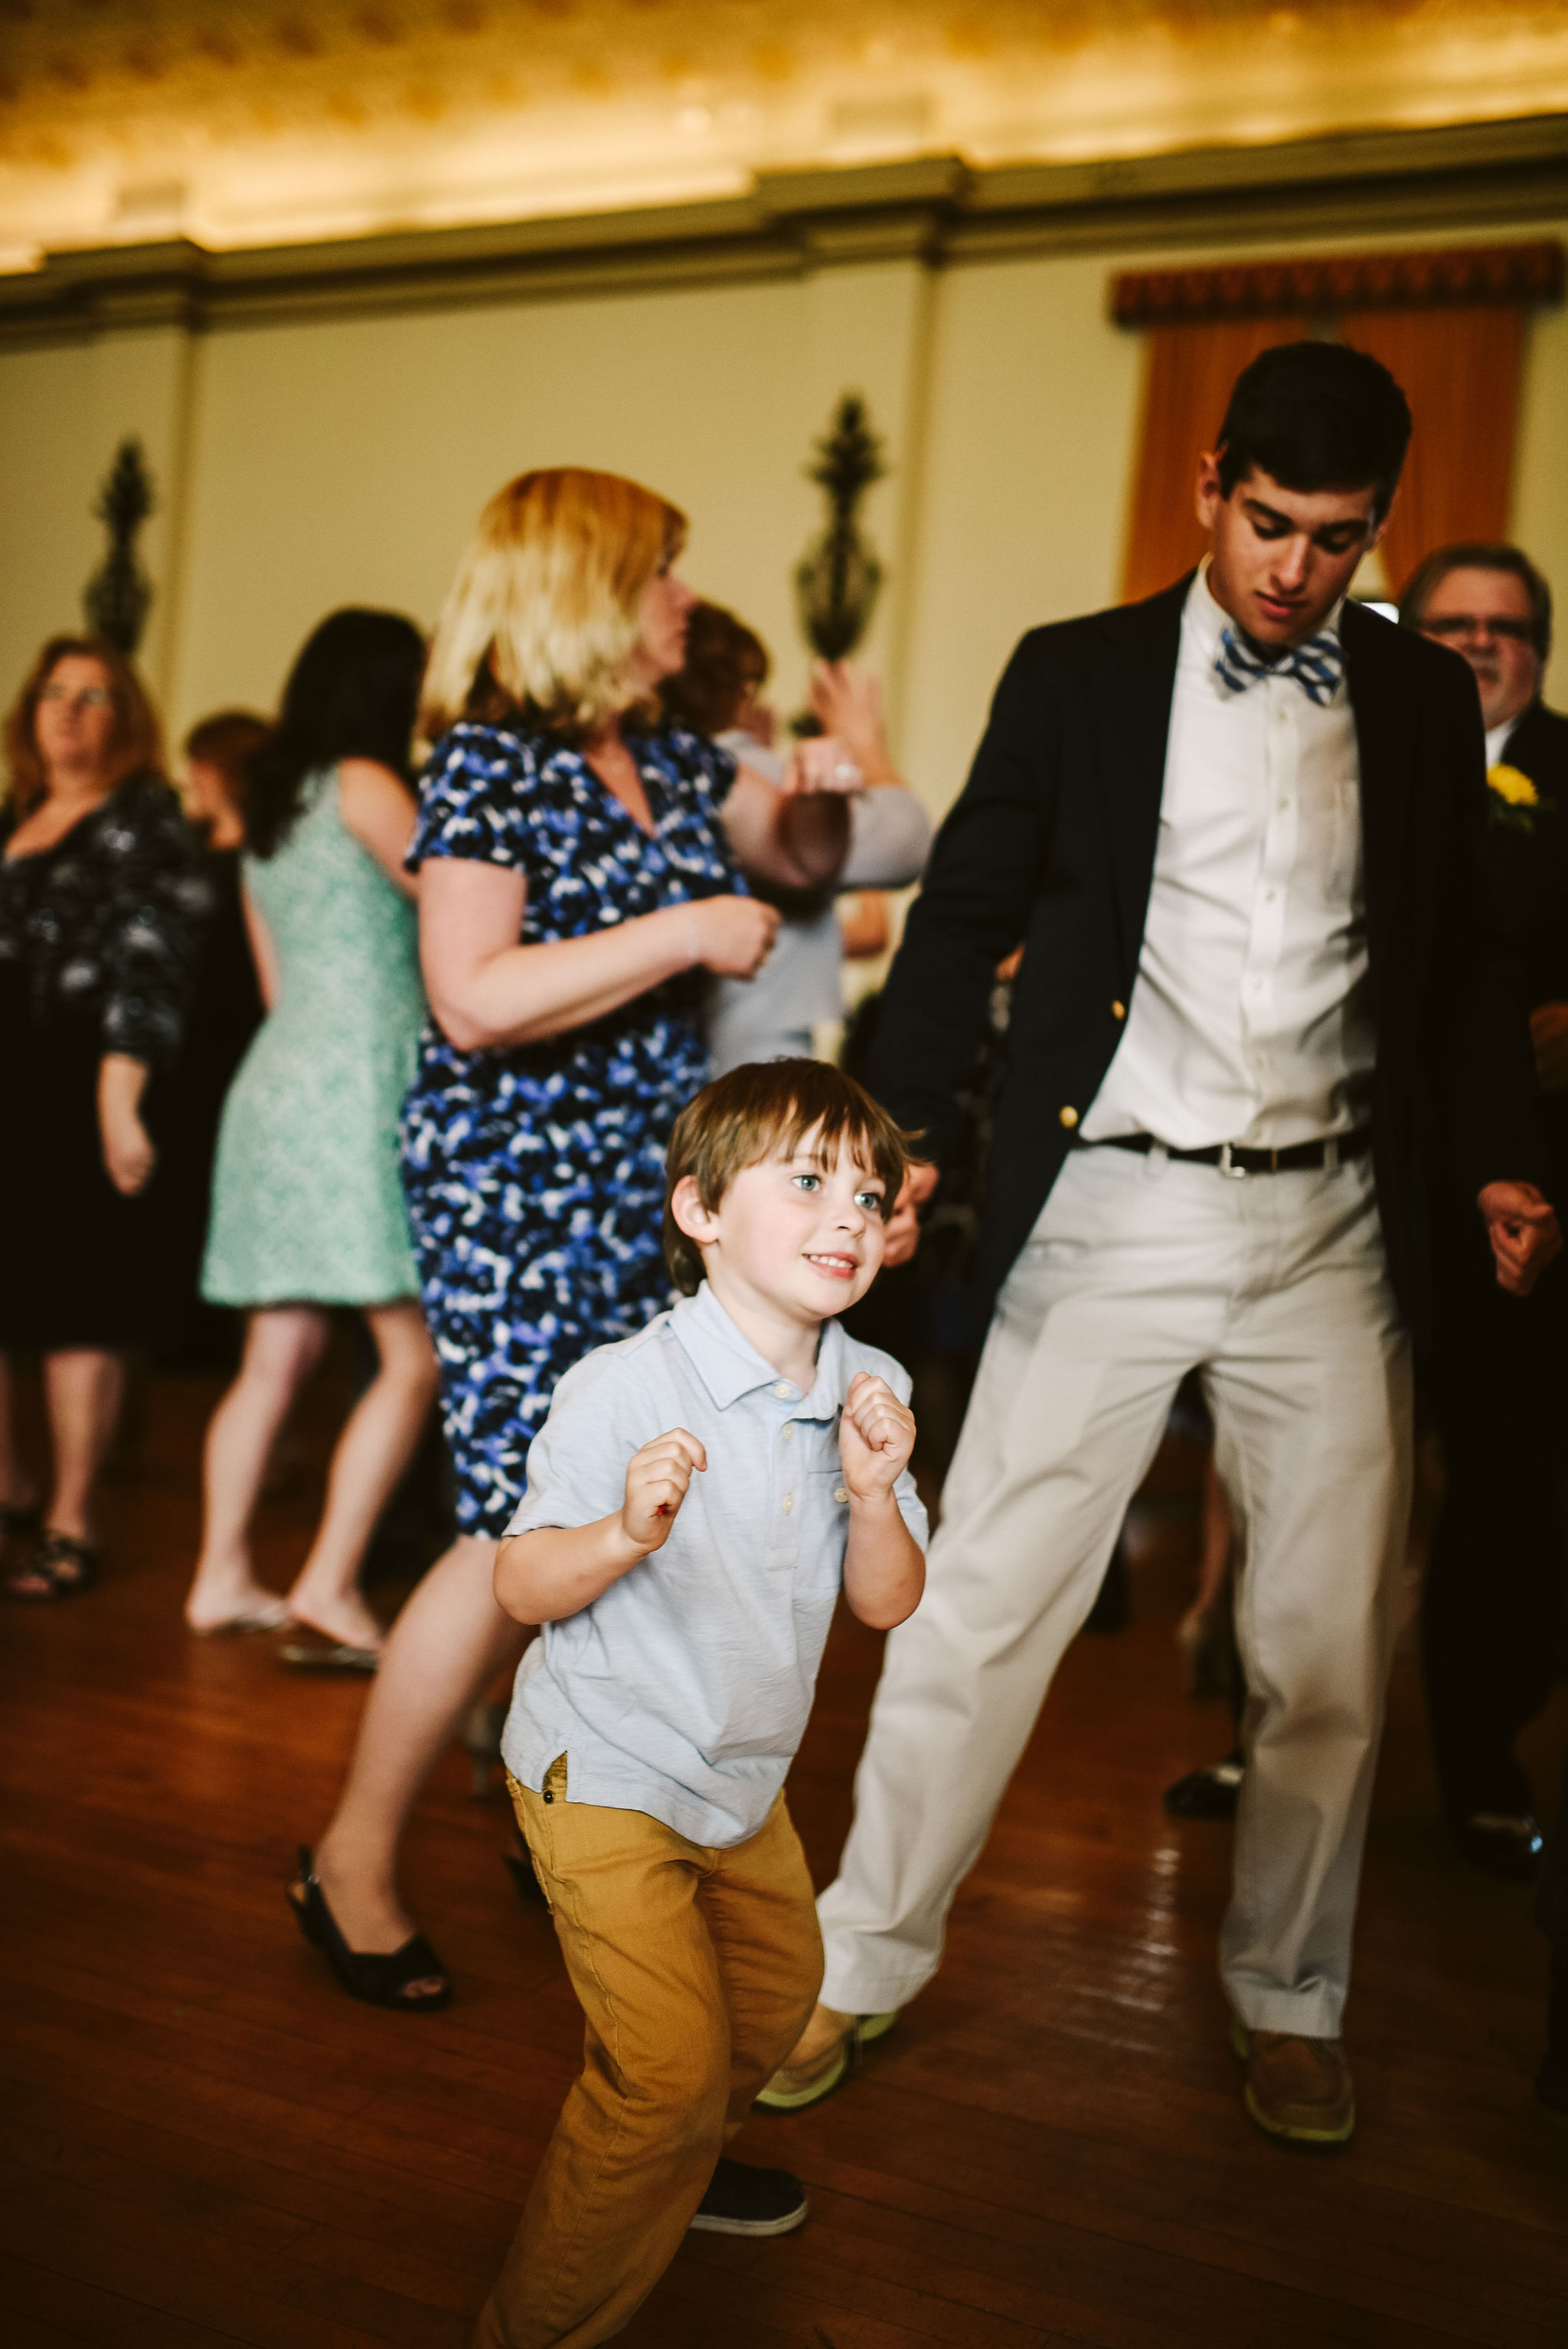 Baltimore, Lithuanian Dance Hall, Maryland Wedding Photographer, Vintage, Classic, 50s Style, Kids Dancing at Reception, Wedding Reception